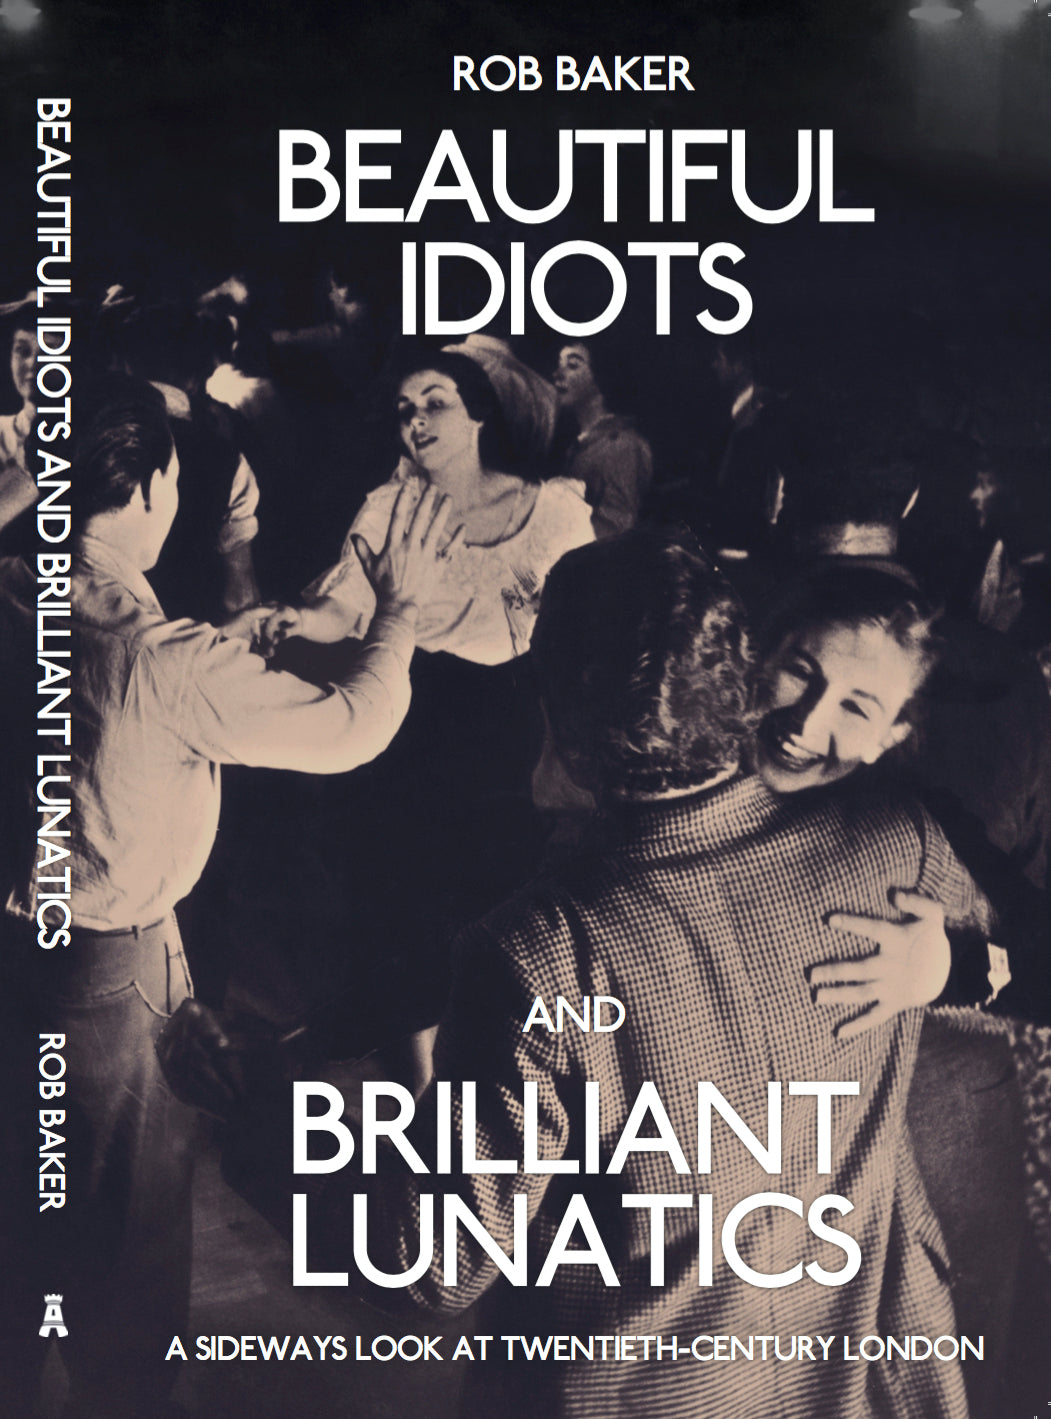 Beautiful Idiots and Brilliant Lunatics - signed by author Rob Baker